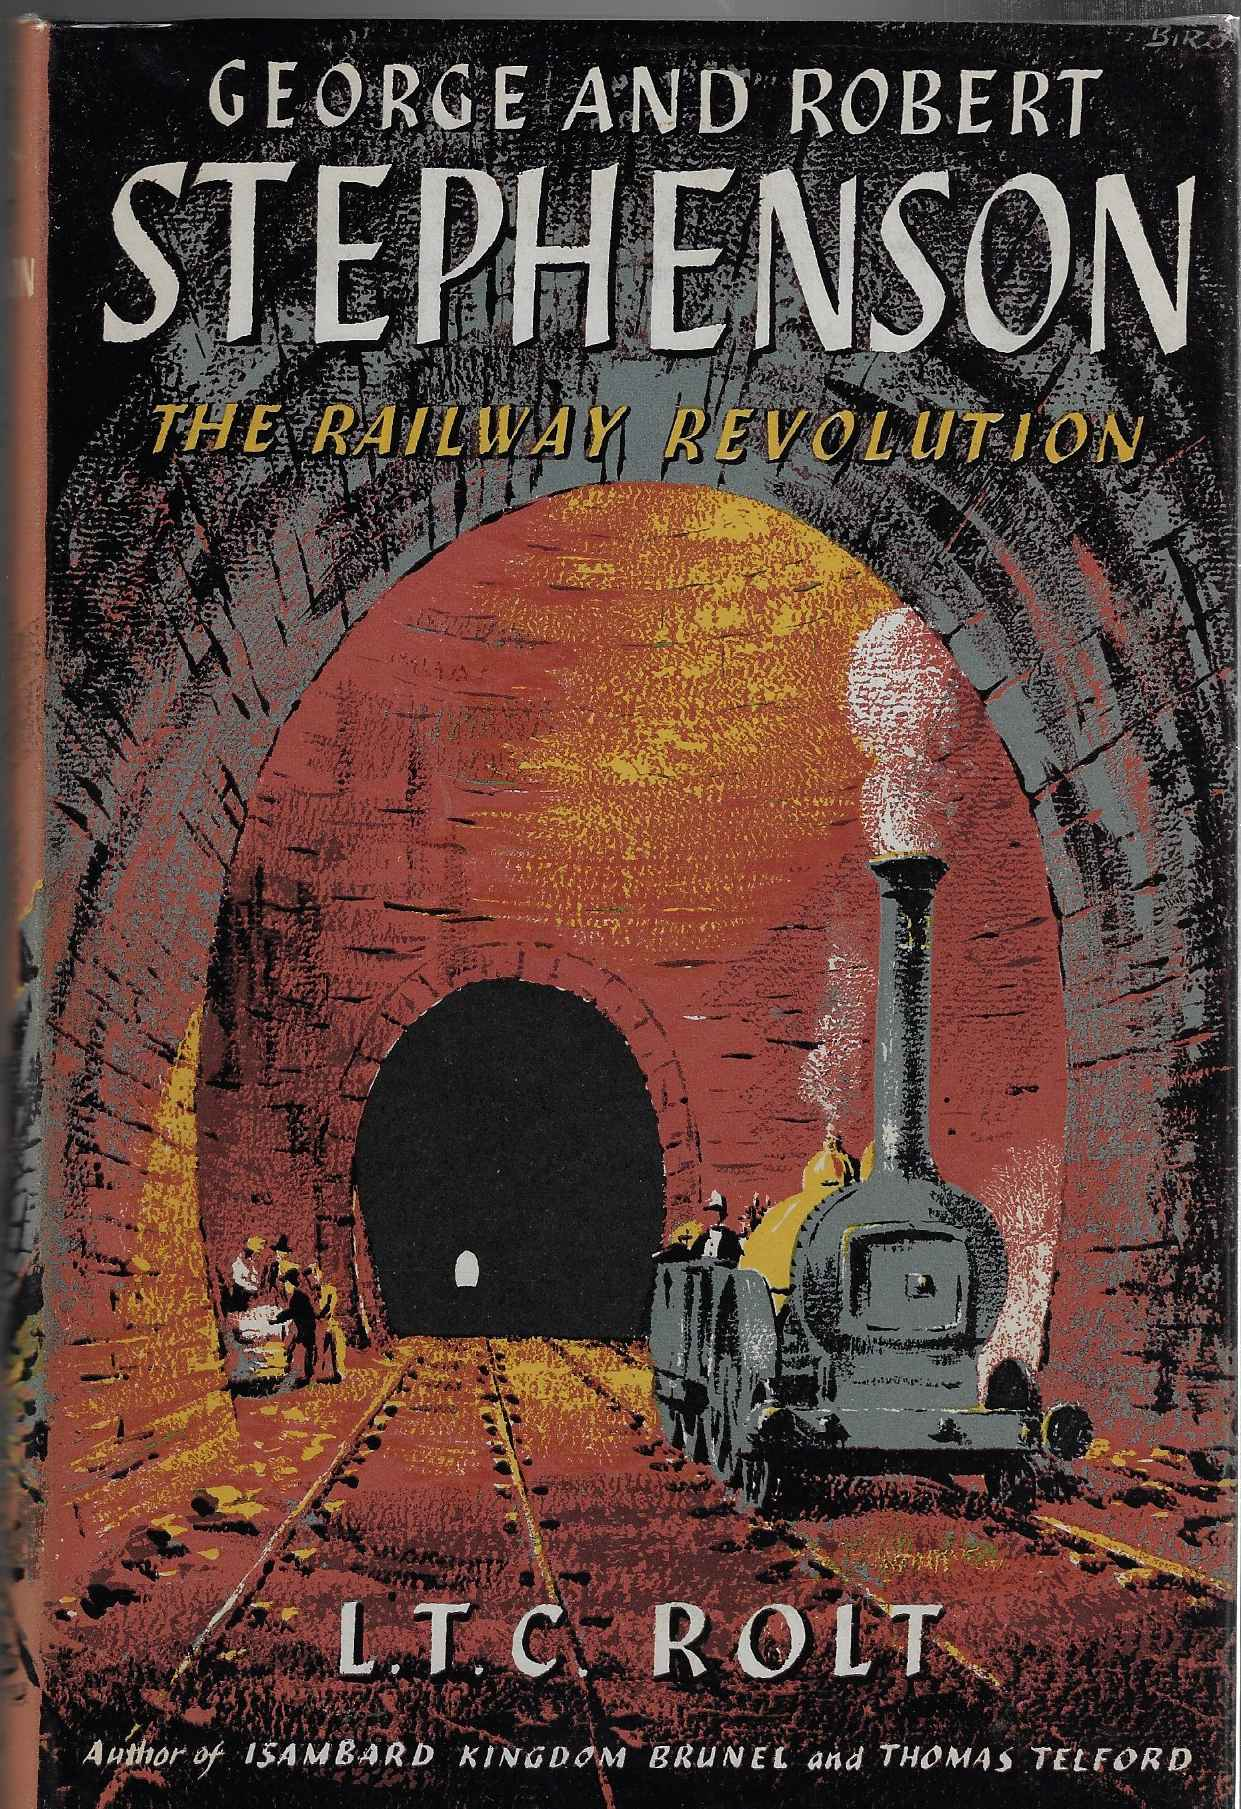 Image for George and Robert Stephenson The Railway Revolution